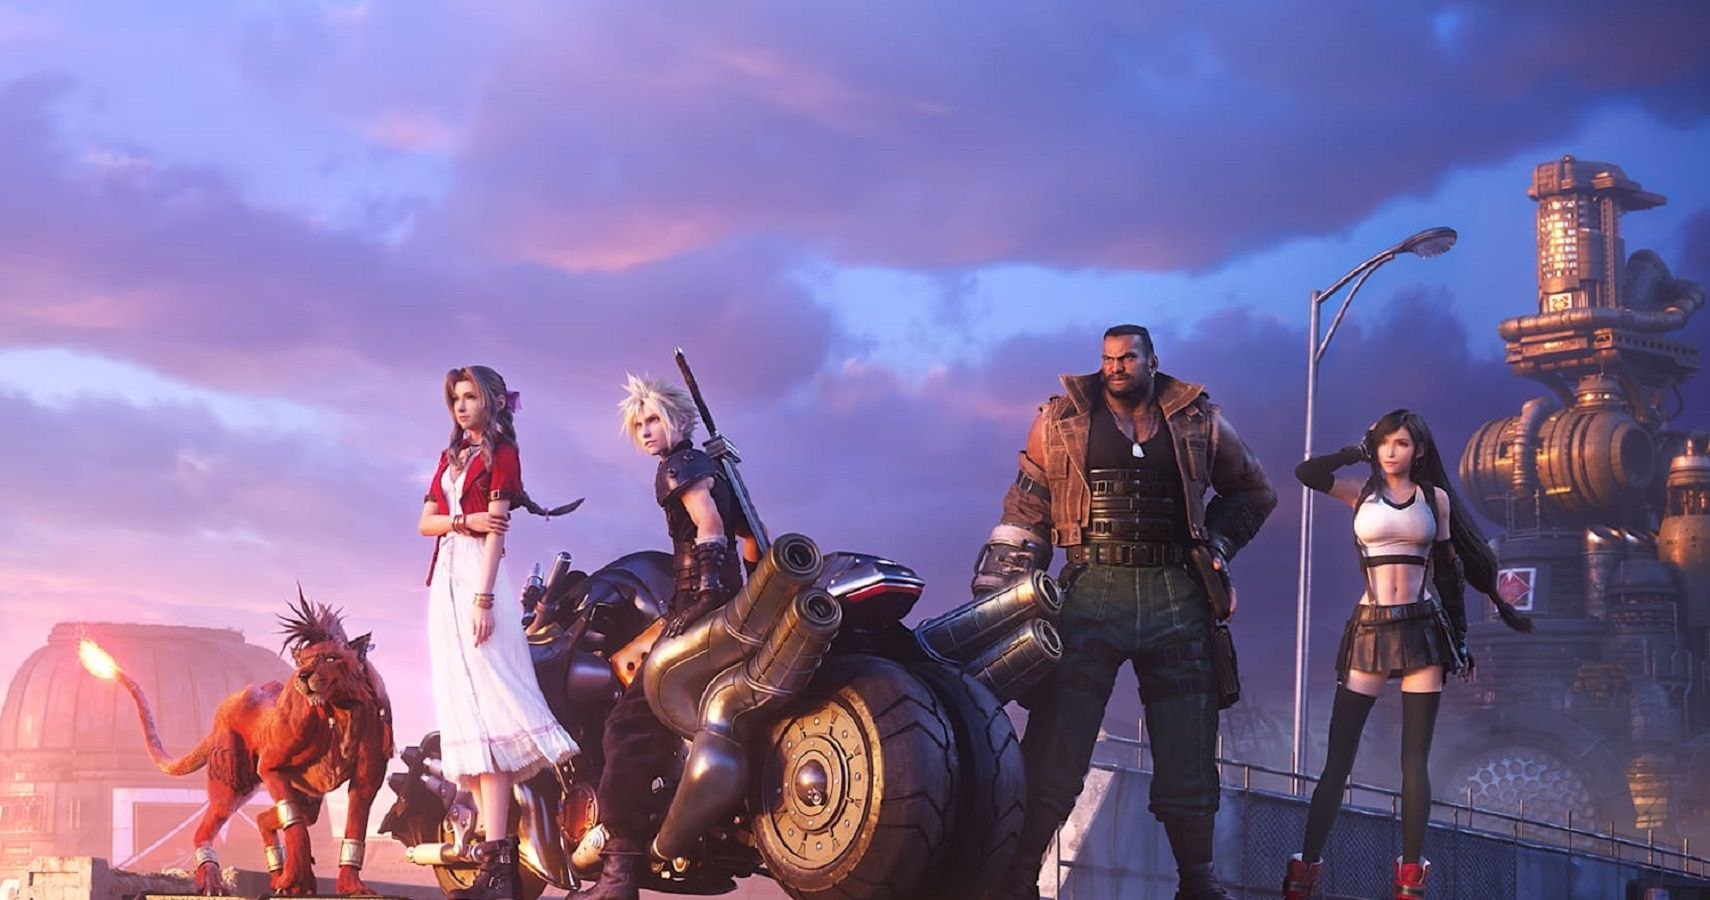 Steam Nieuws Over Thegamerwebsite Final Fantasy 7 Remake 2 S World Map Will Be Quot A Challenge Quot For Square Enix